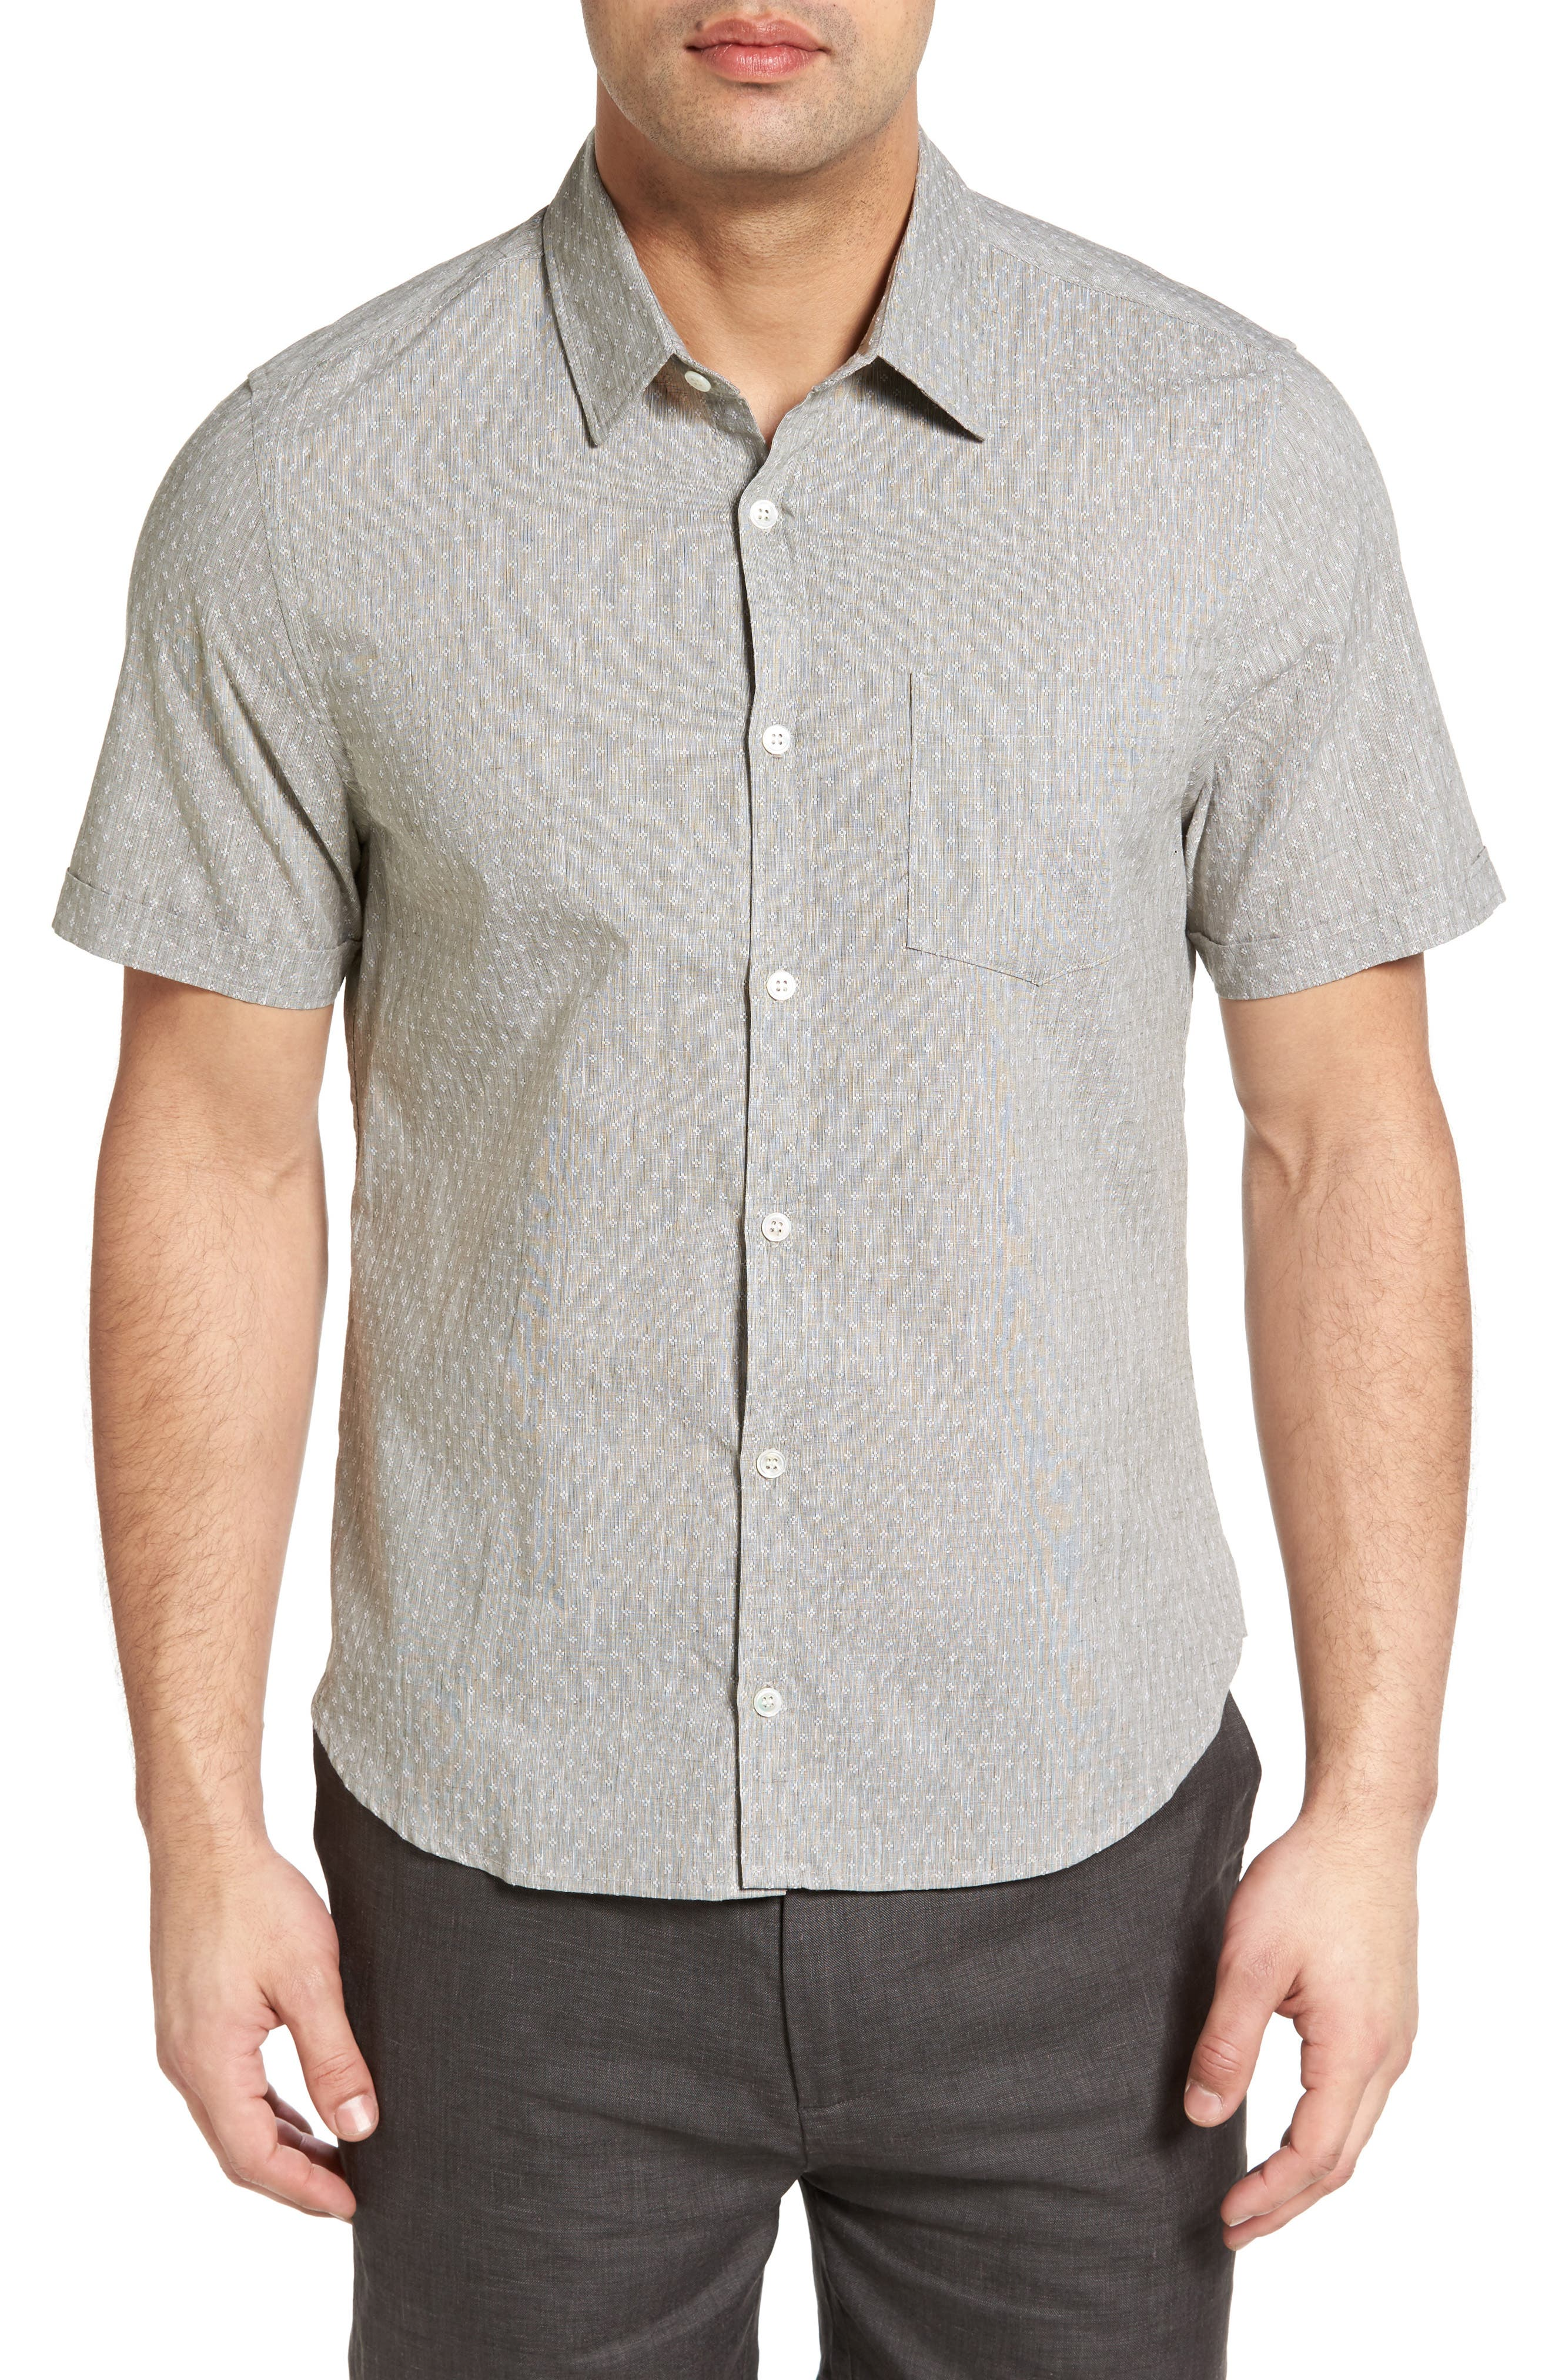 LANAI COLLECTION Classic Fit Sport Shirt, Main, color, 310